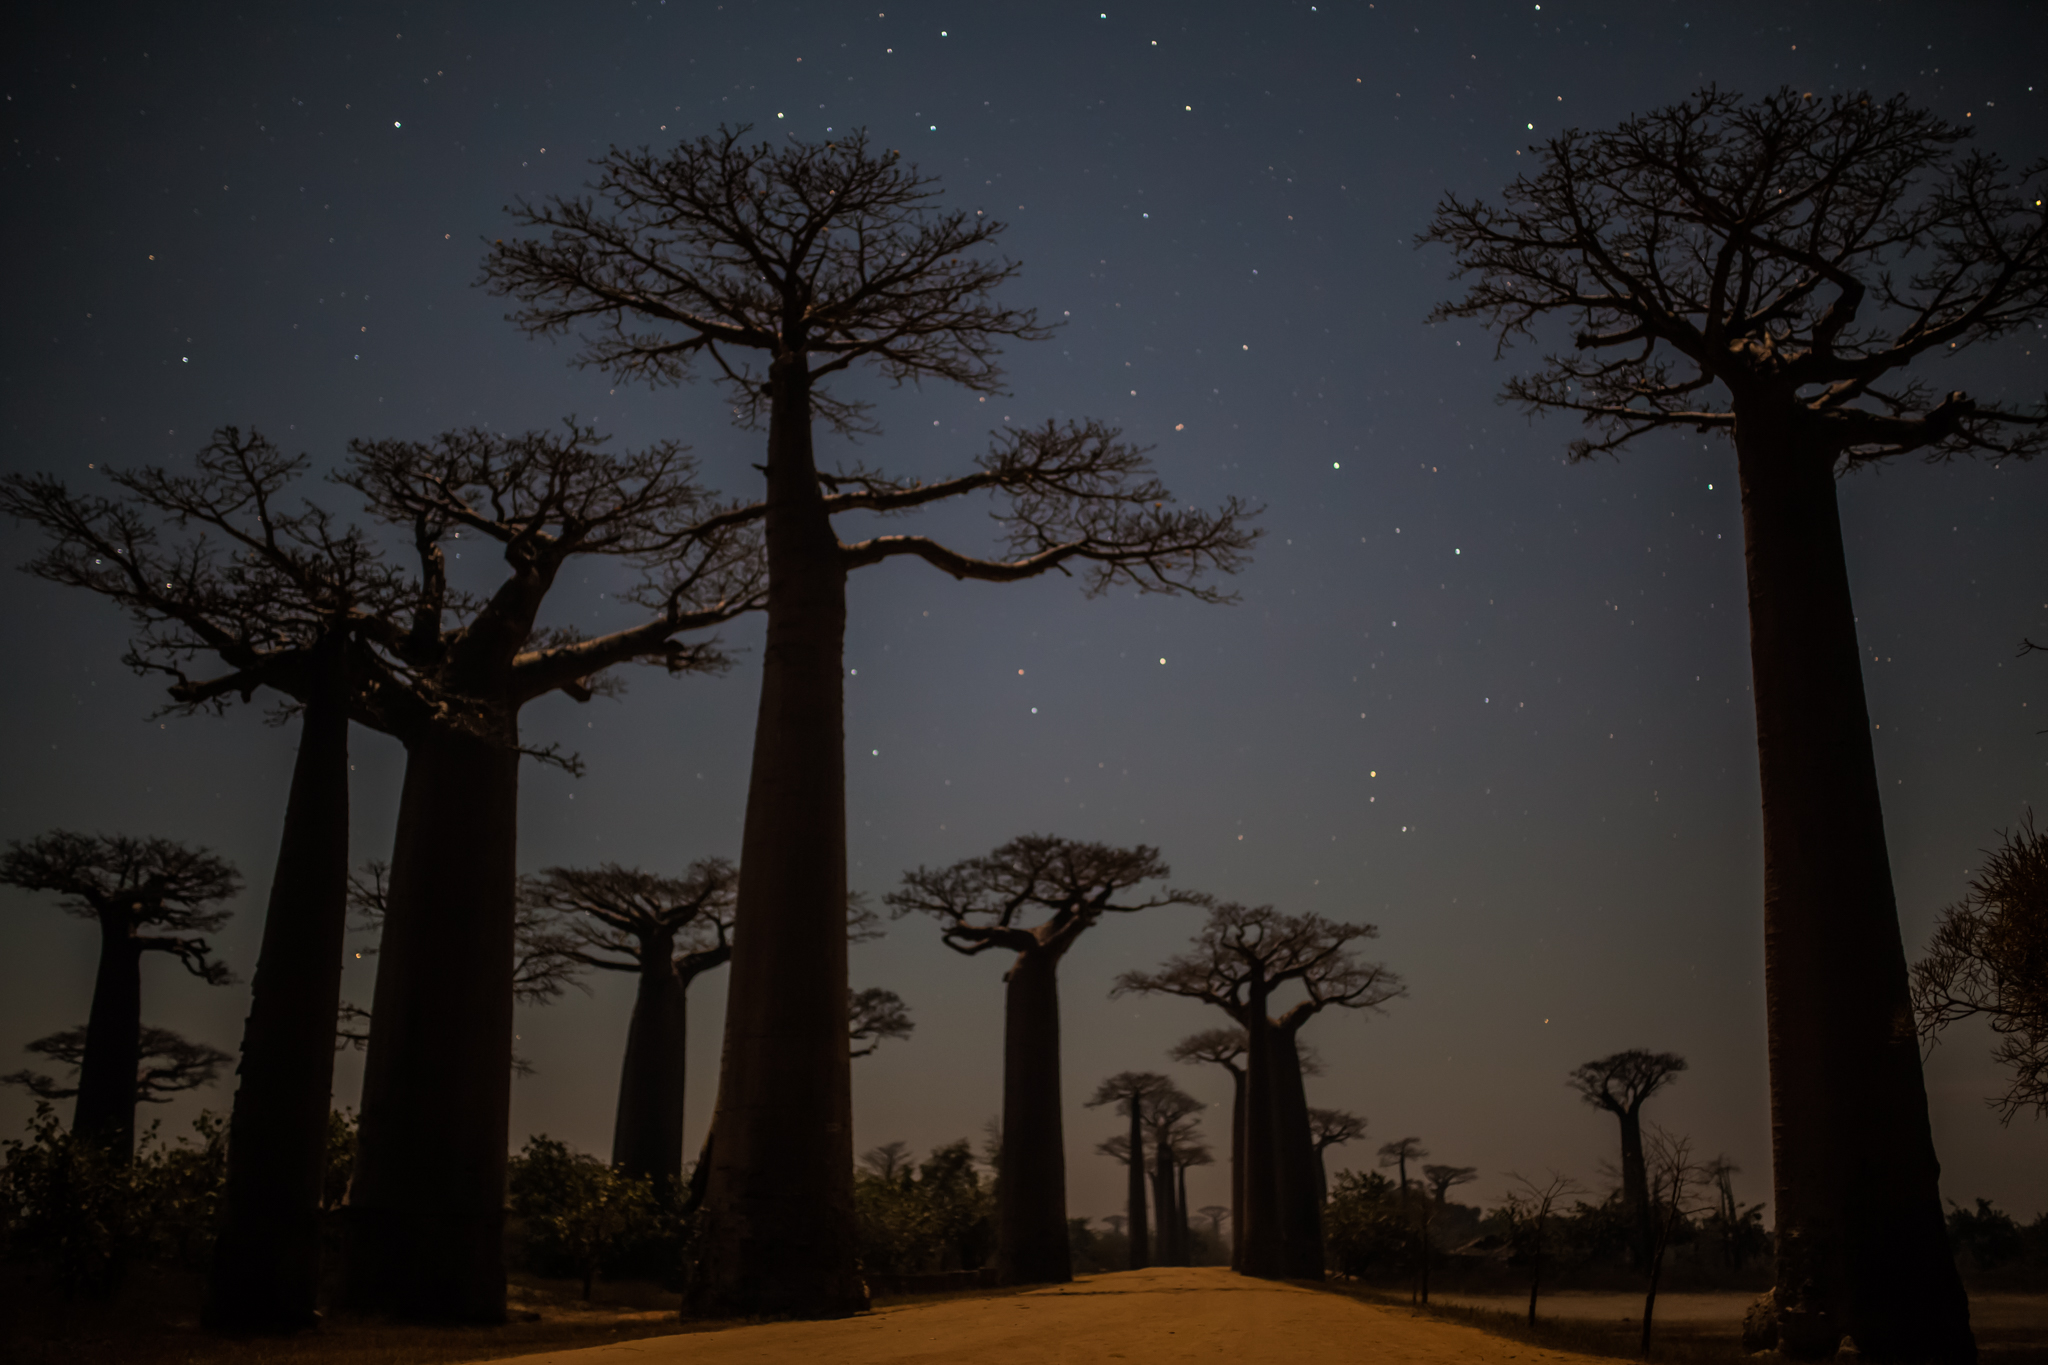 Once the Sunset Photos Have Been Taken the Tourists Drift Back to Morondava Leaving the Trees to their Silence. But there is more to Madagascar's most famous skyline than most appreciate